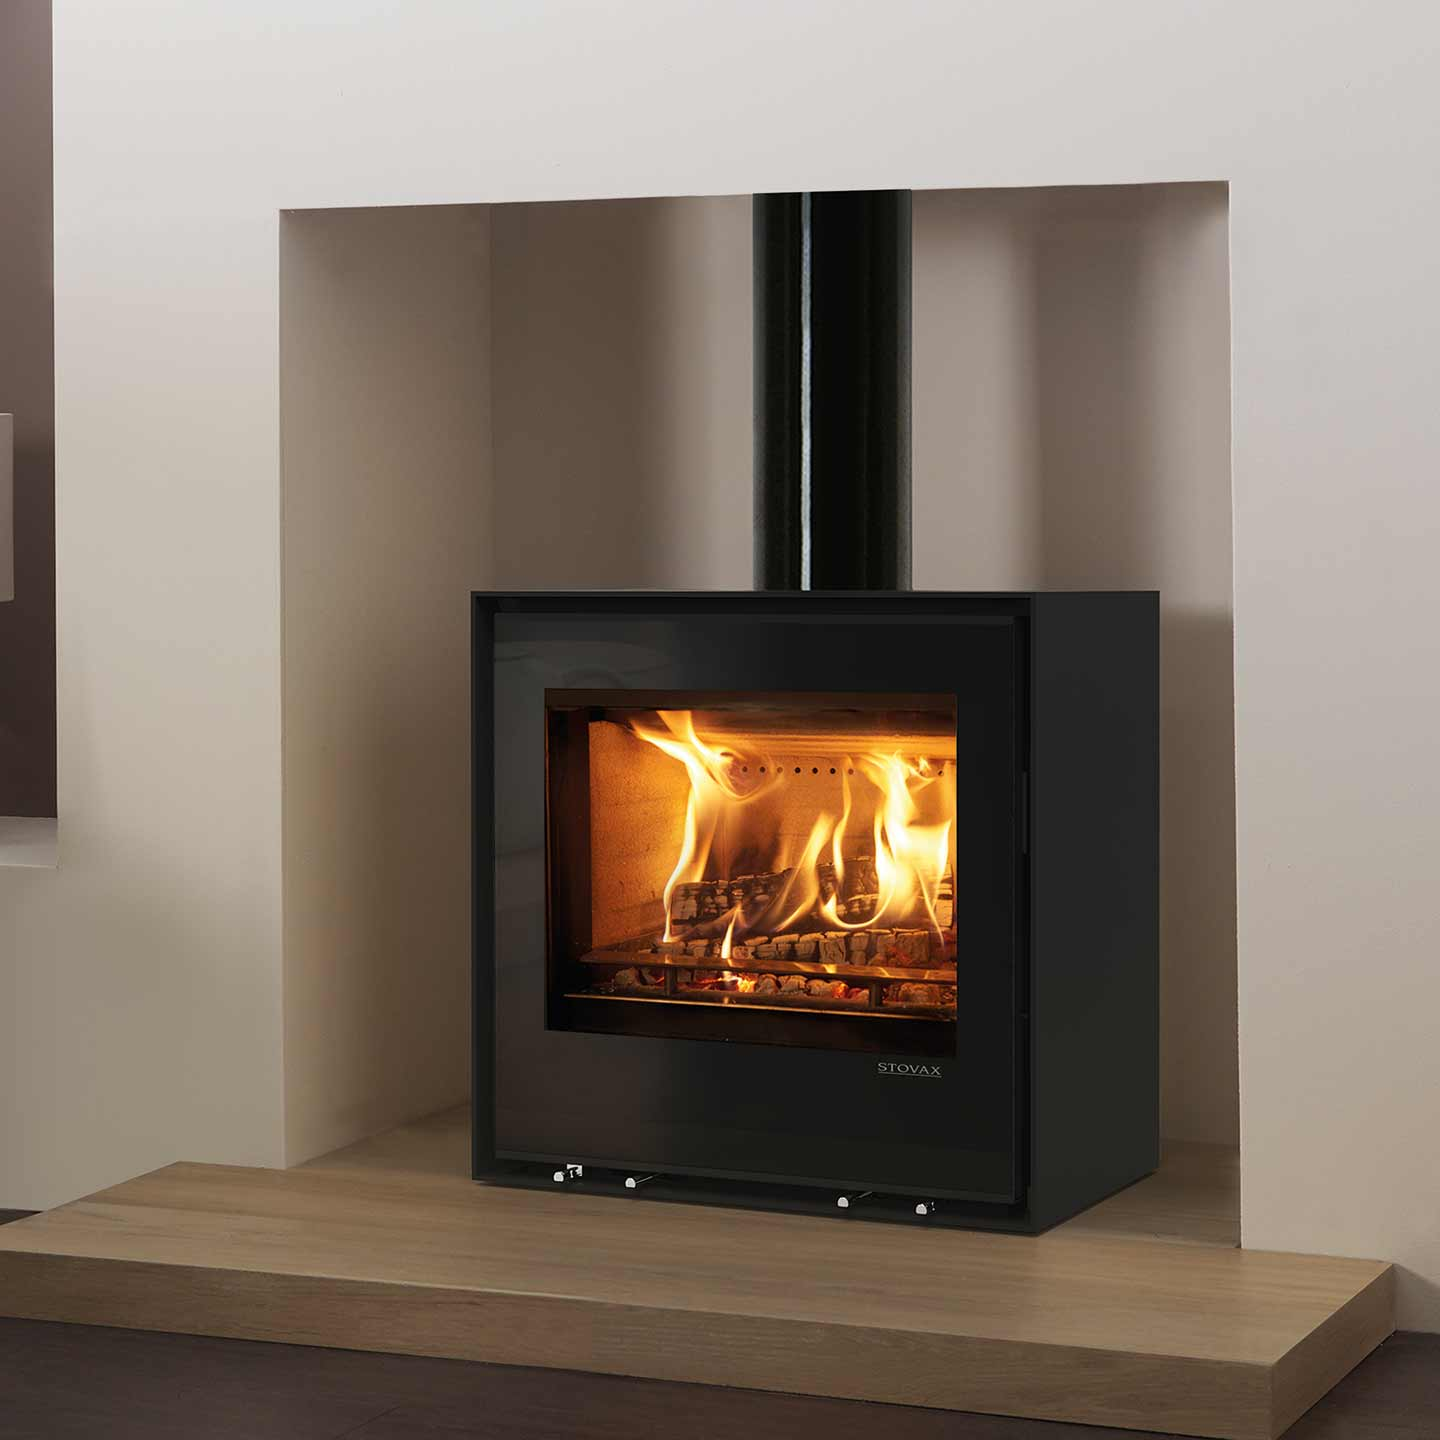 Stovax Elise 540 Glass Wood Burning Stove The Stove Site